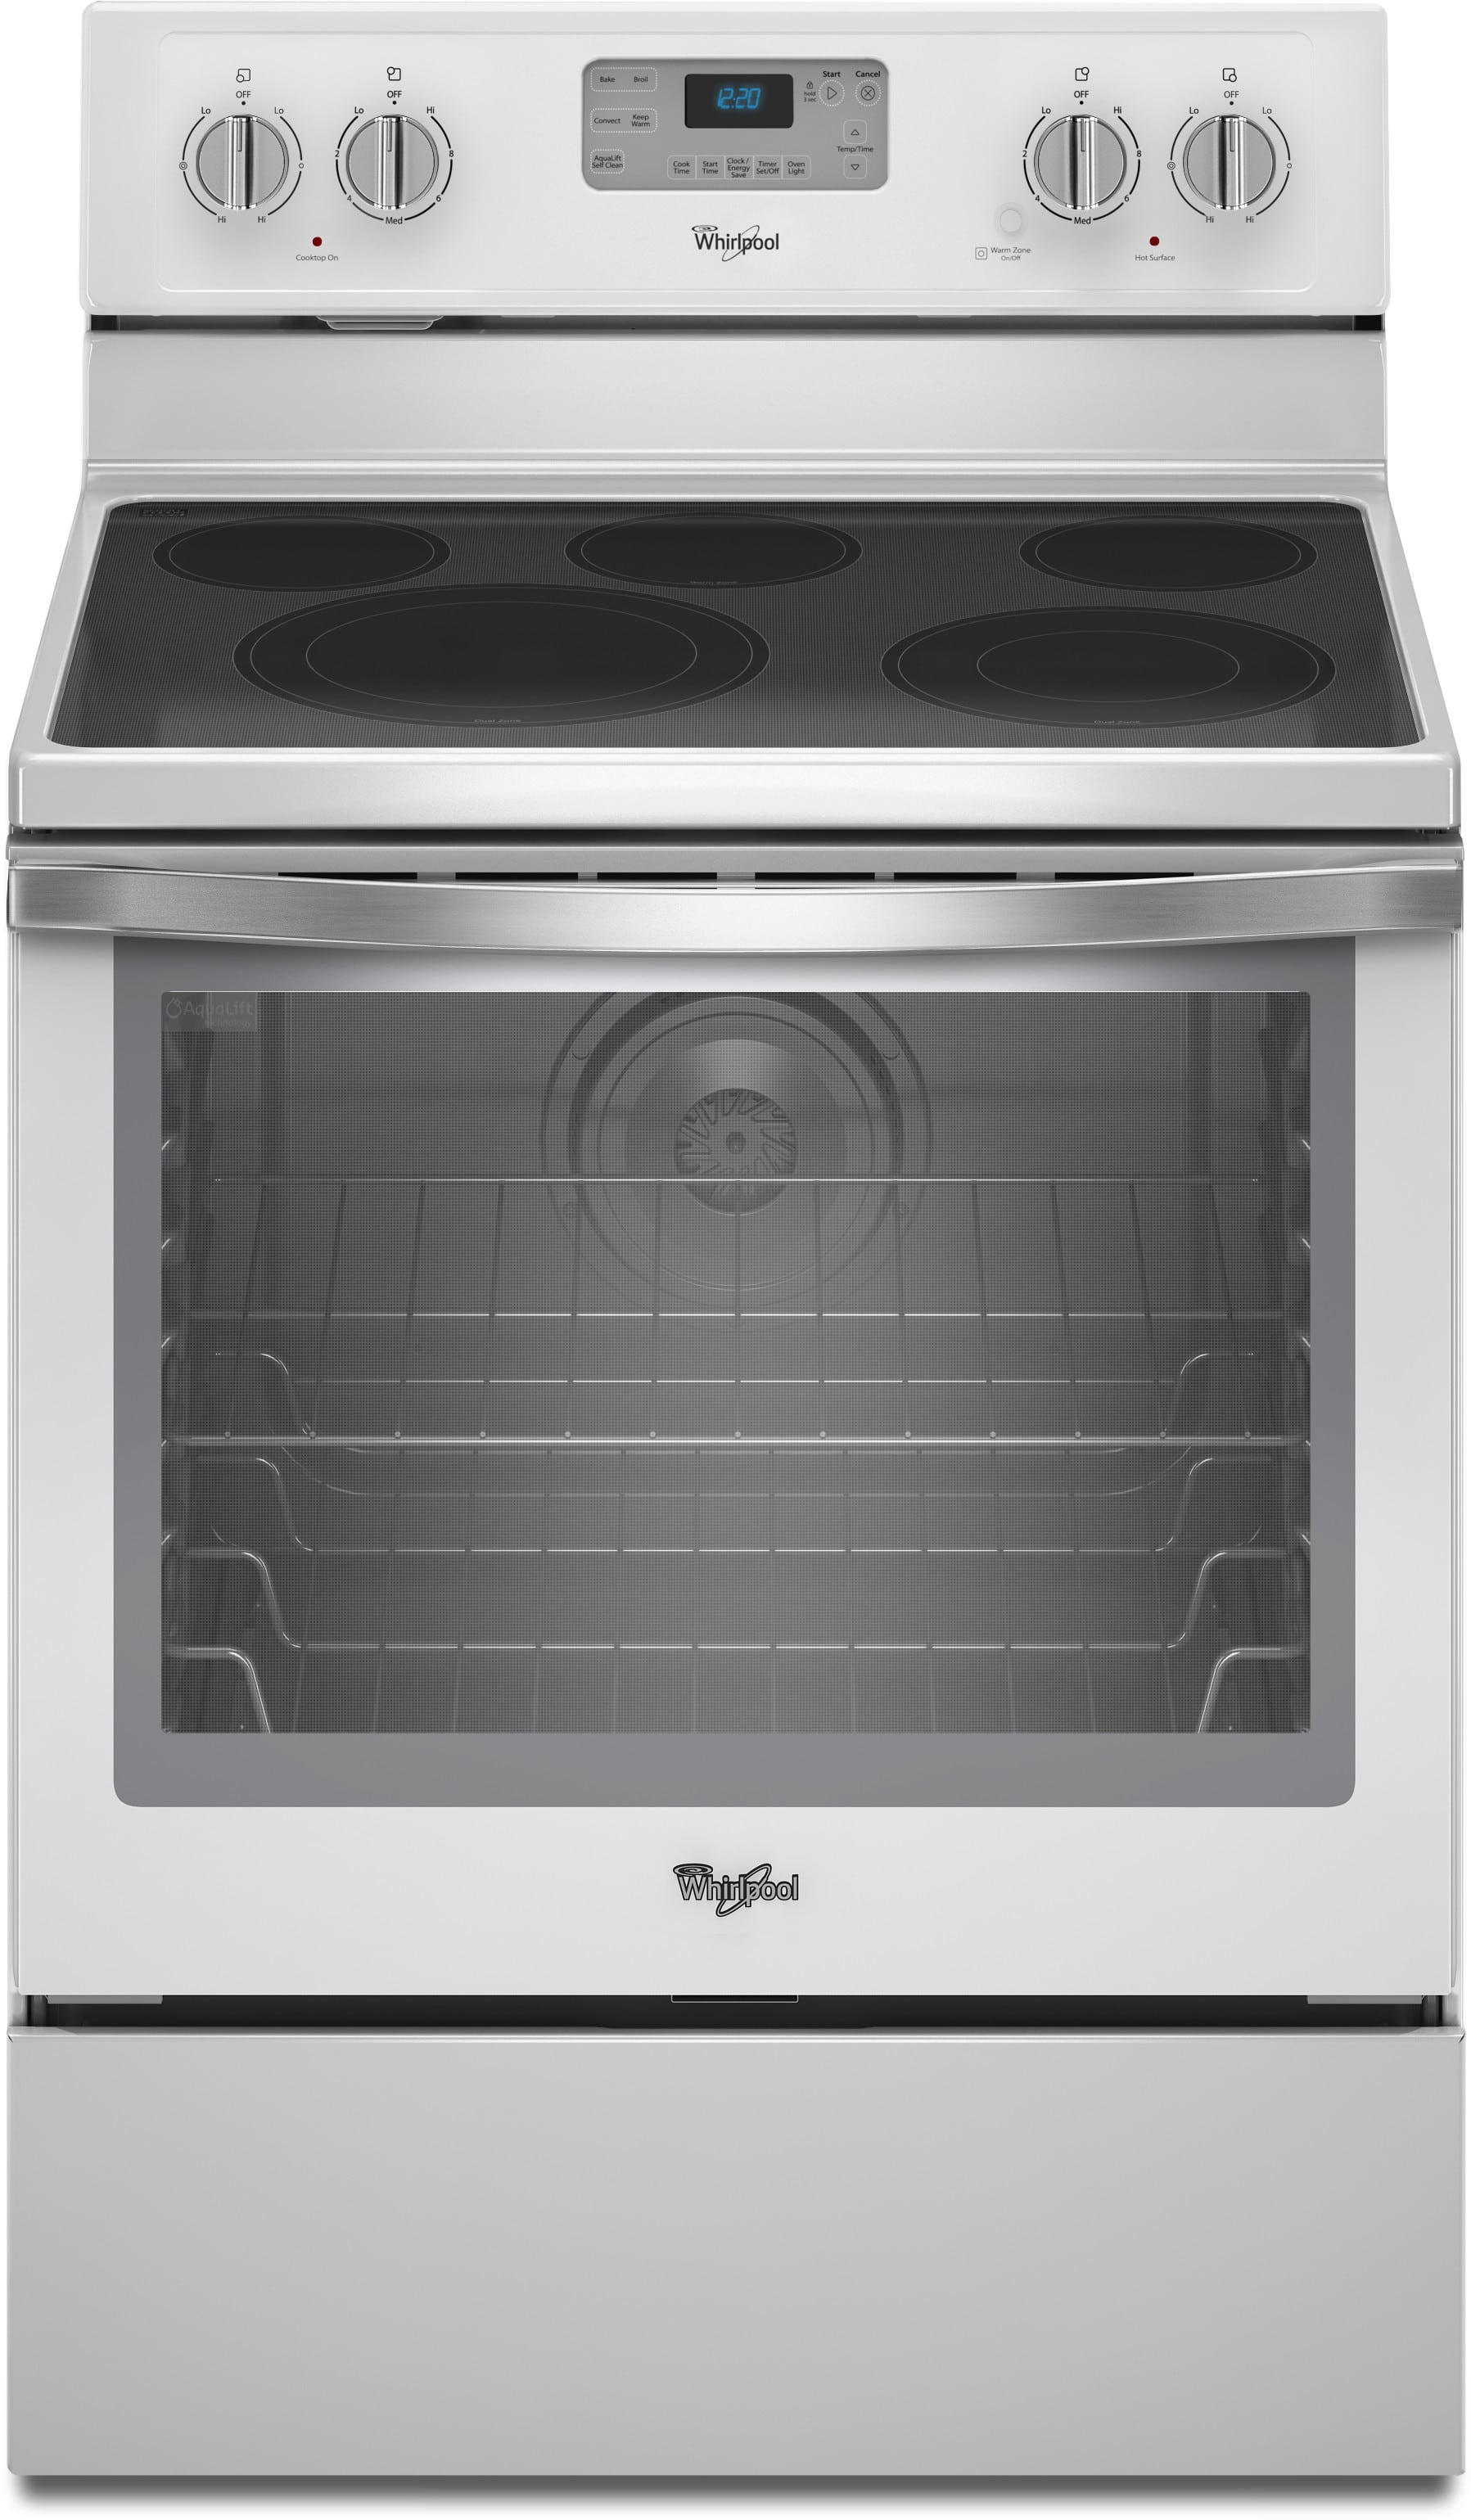 Whirlpool Wfe540h0eh 30 Inch Freestanding Electric Range